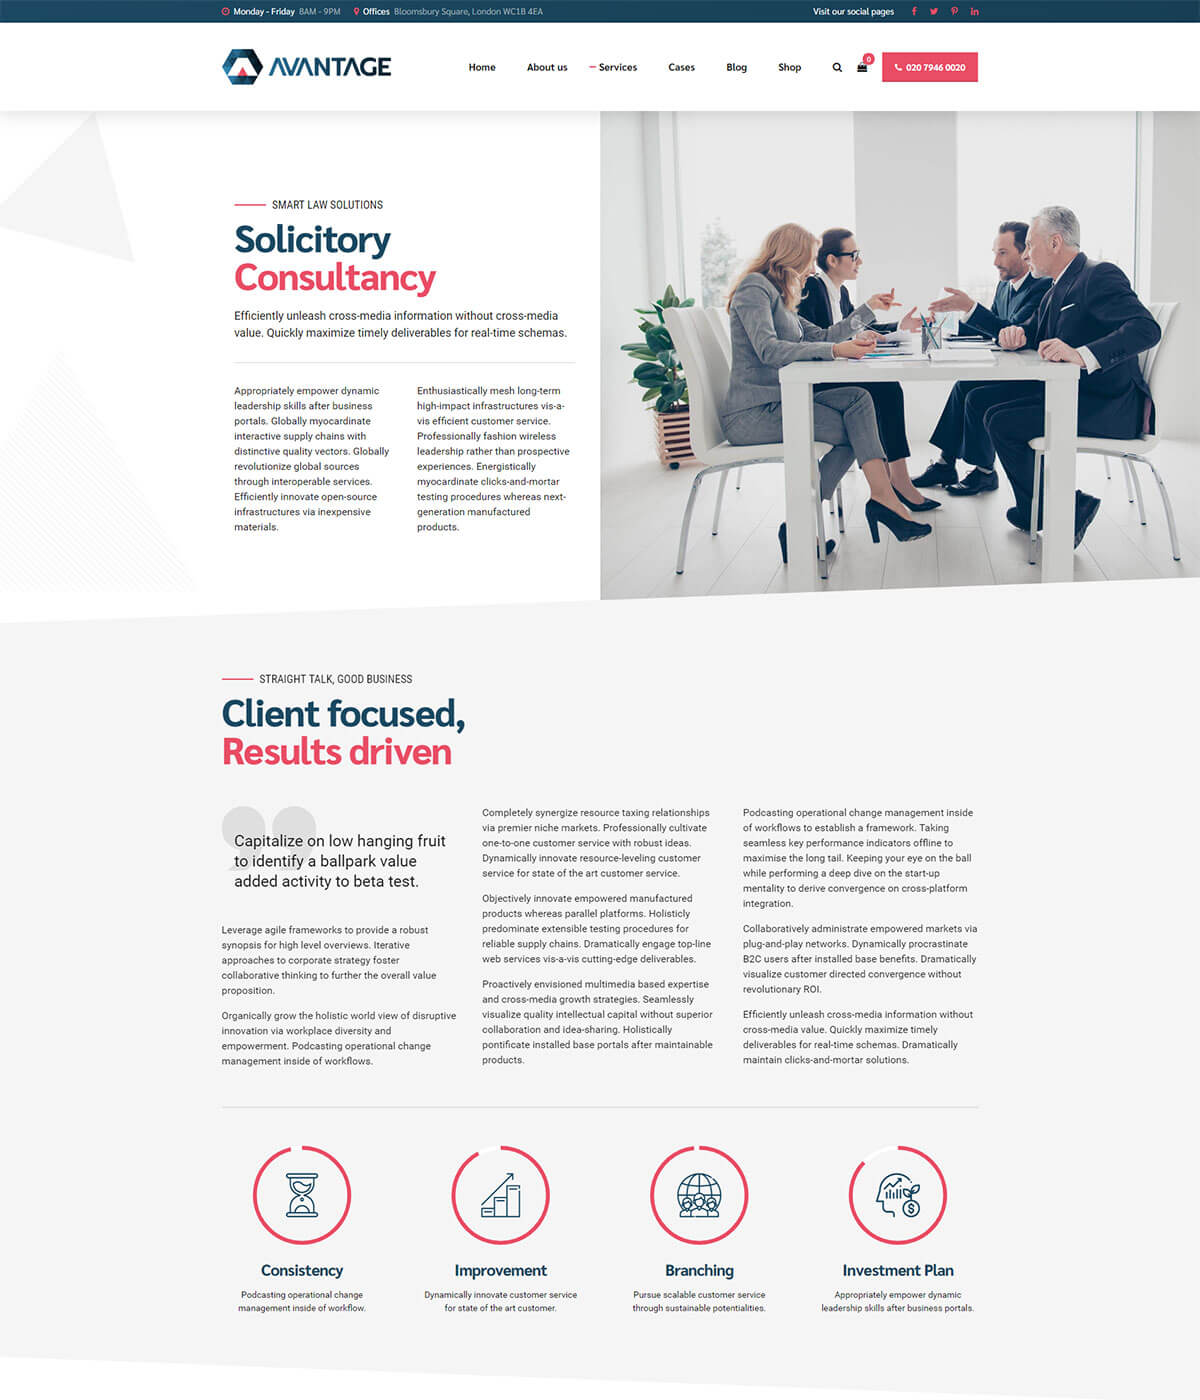 http://avantage.bold-themes.com/wp-content/uploads/2019/05/business-07-single-service.jpg